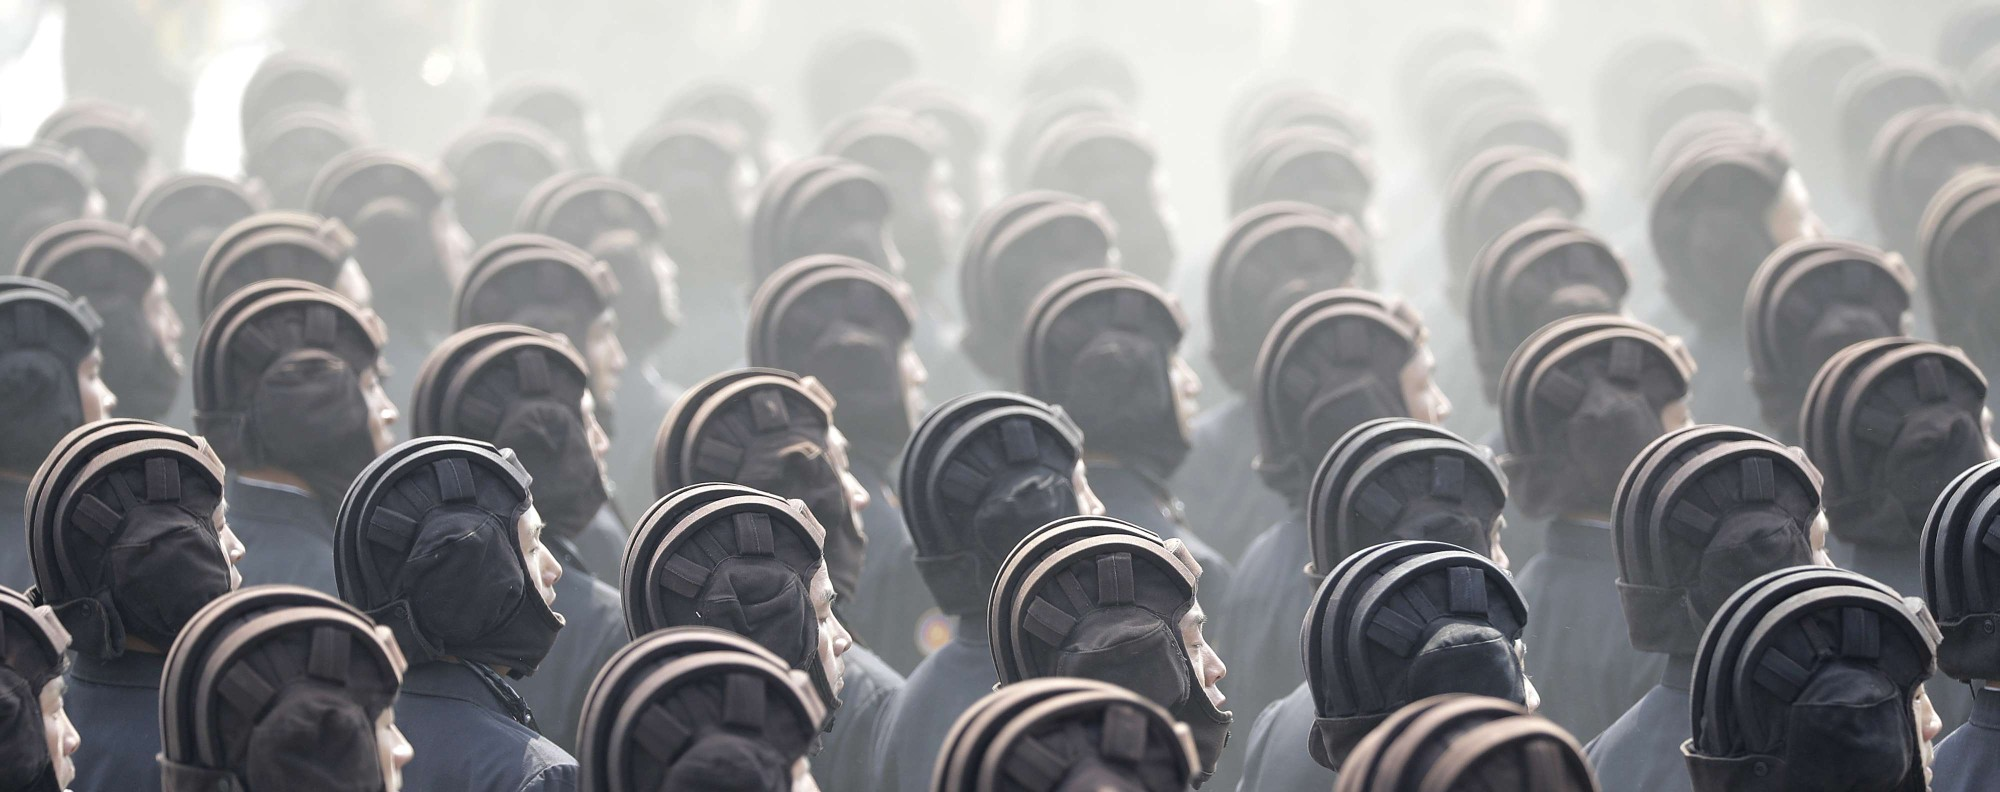 Soldiers march during a military parade in Pyongyang, North Korea. Photo: AP